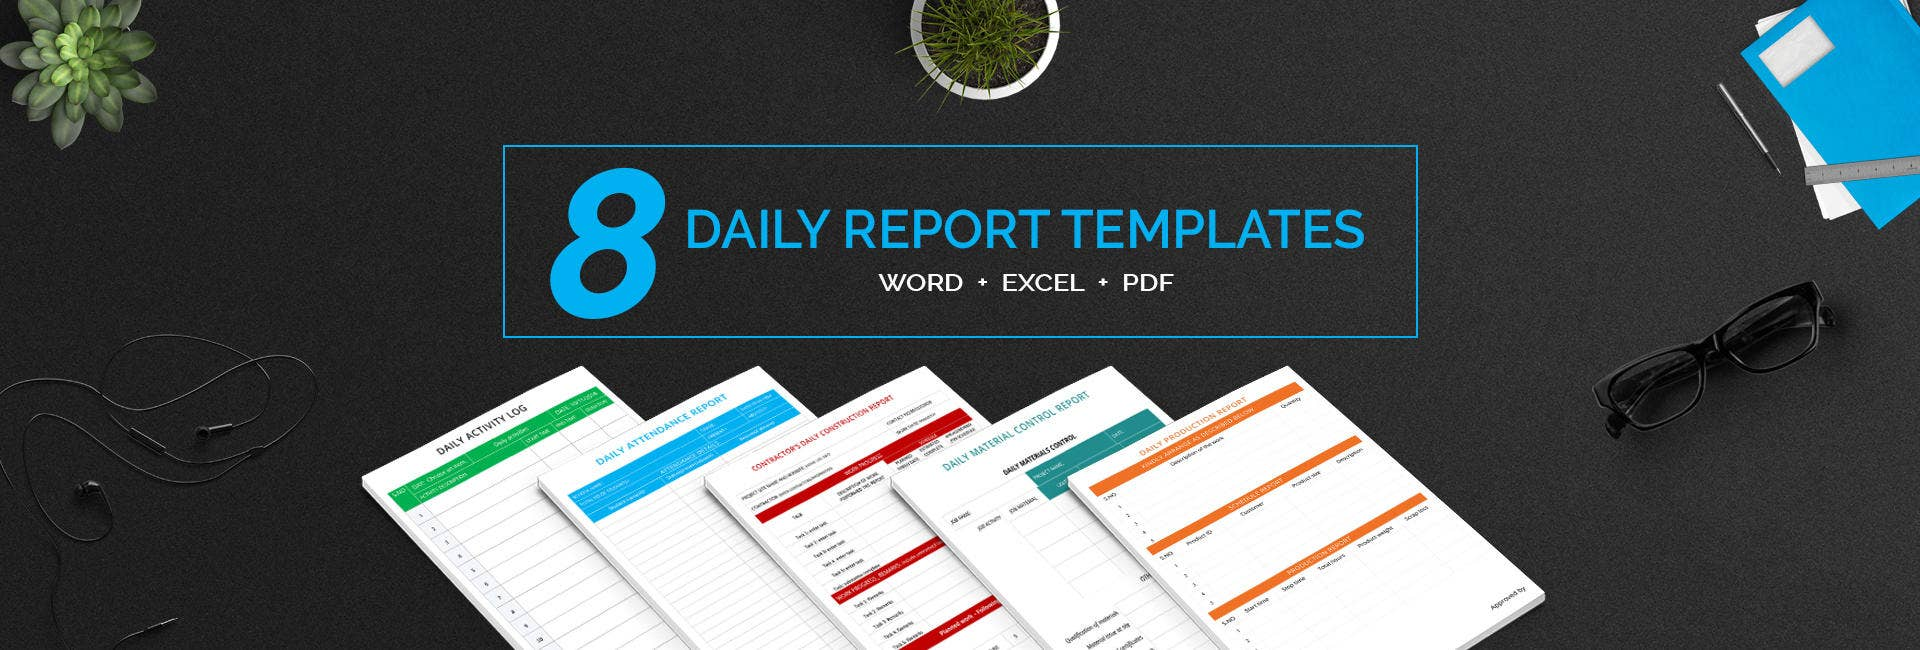 dailyreporttemplates